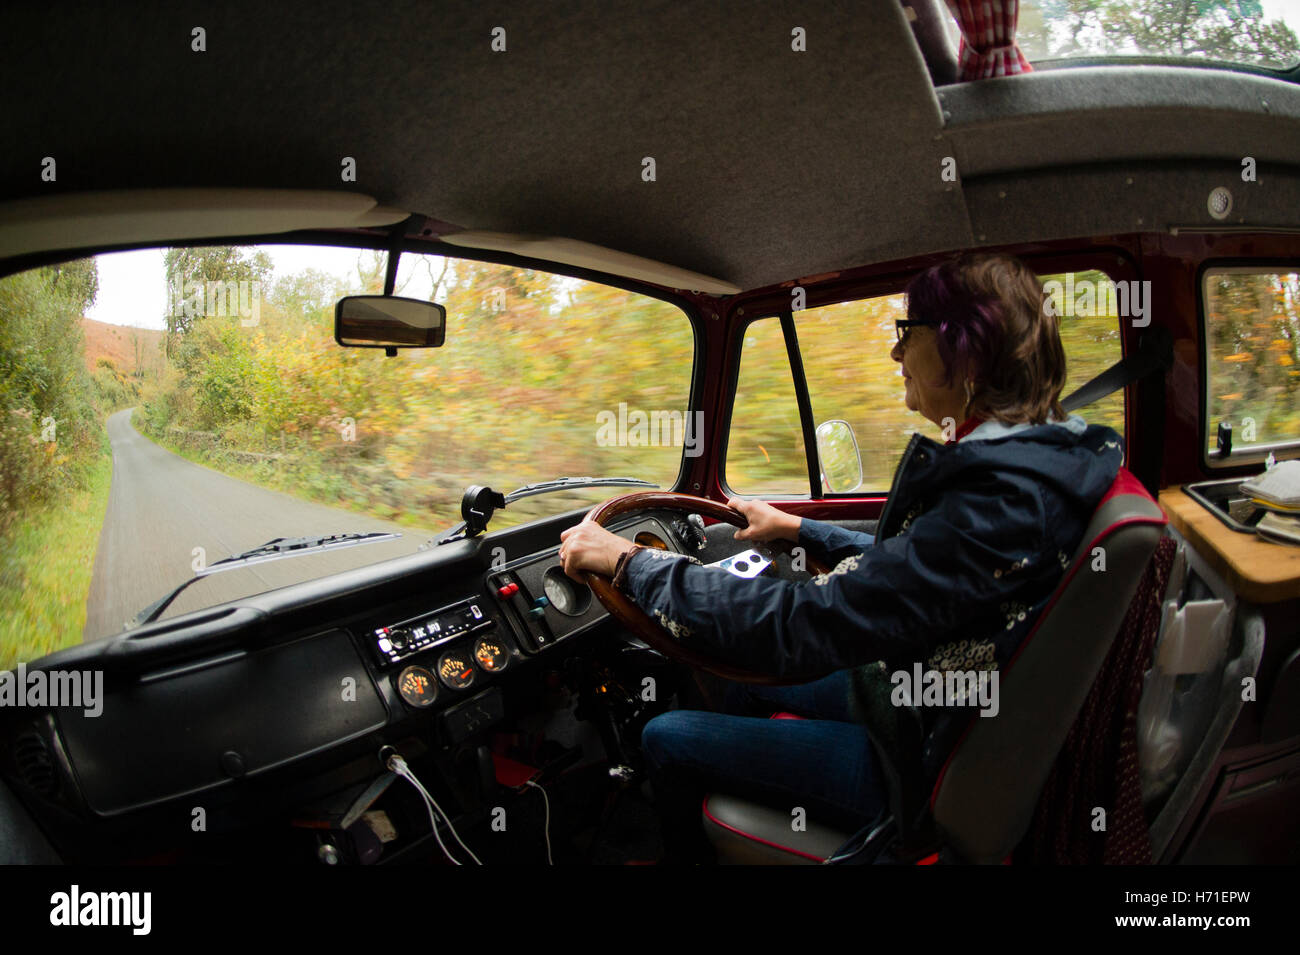 Vacations in north Wales: A middle aged woman driving her classic VW volkswagen T2 campervan along a narrow lane - Stock Image